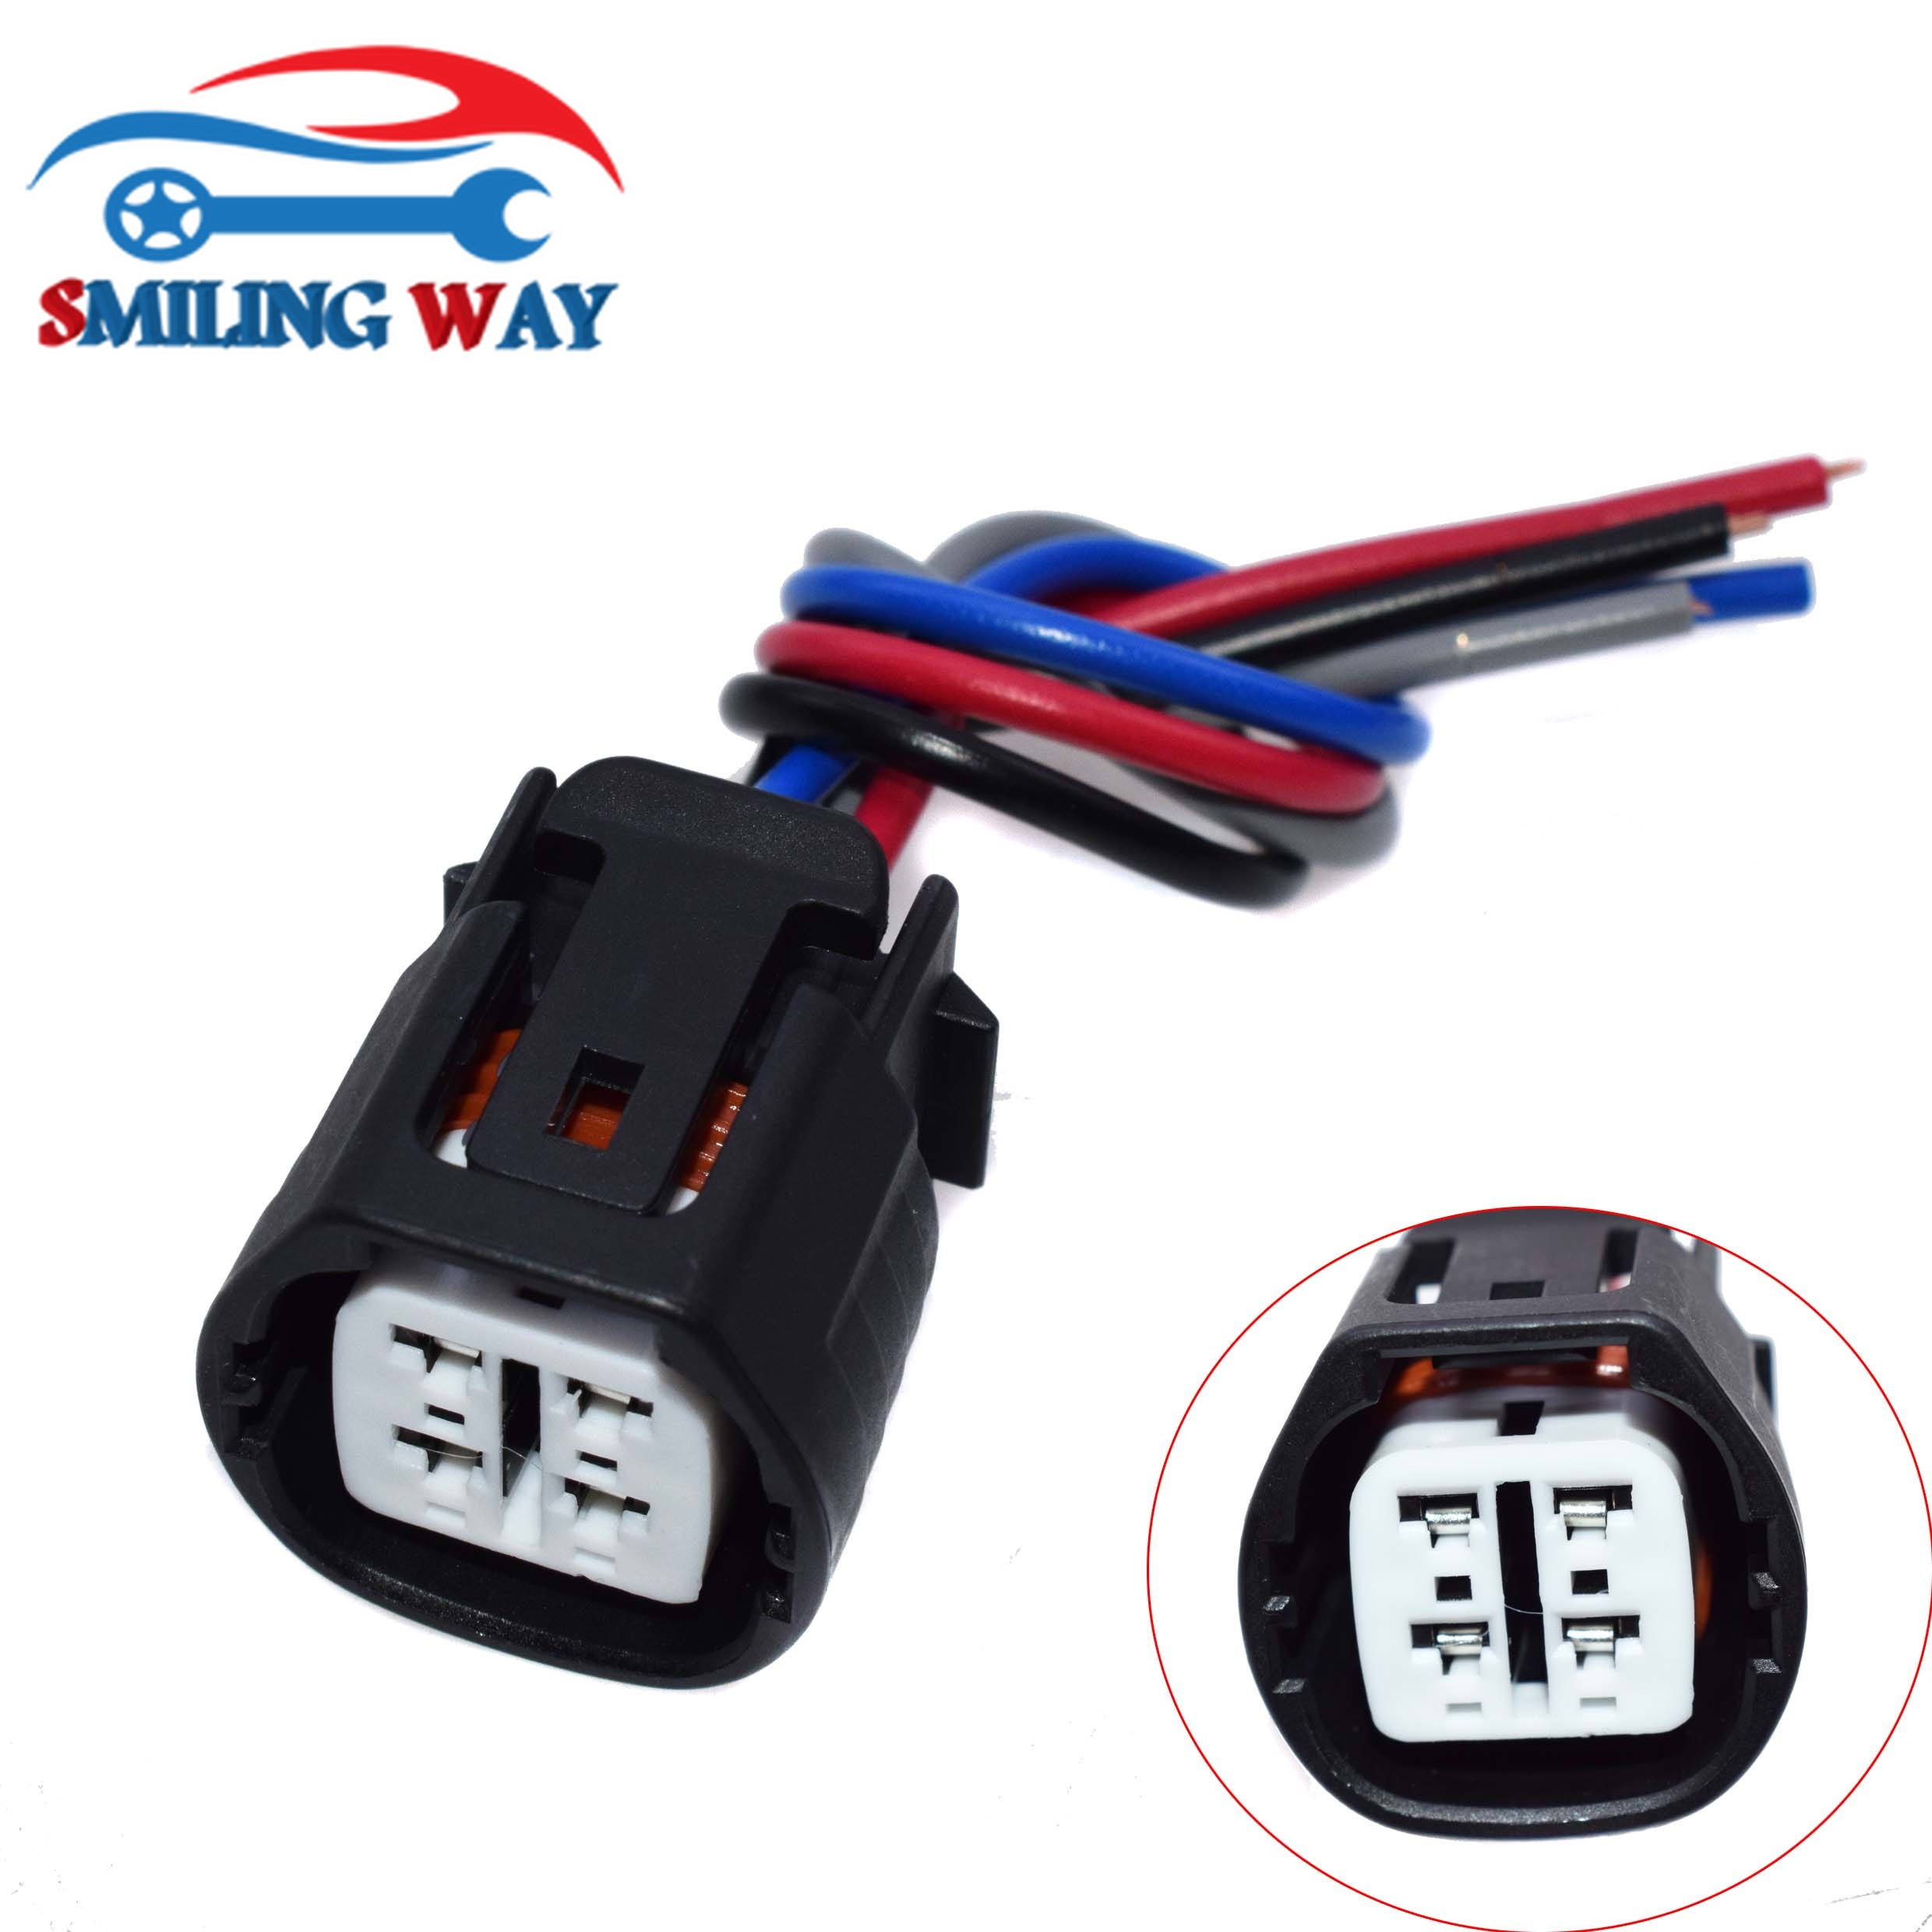 US $4.73 22% OFF|Alternator Wiring Connector Wire Harness Cable For on